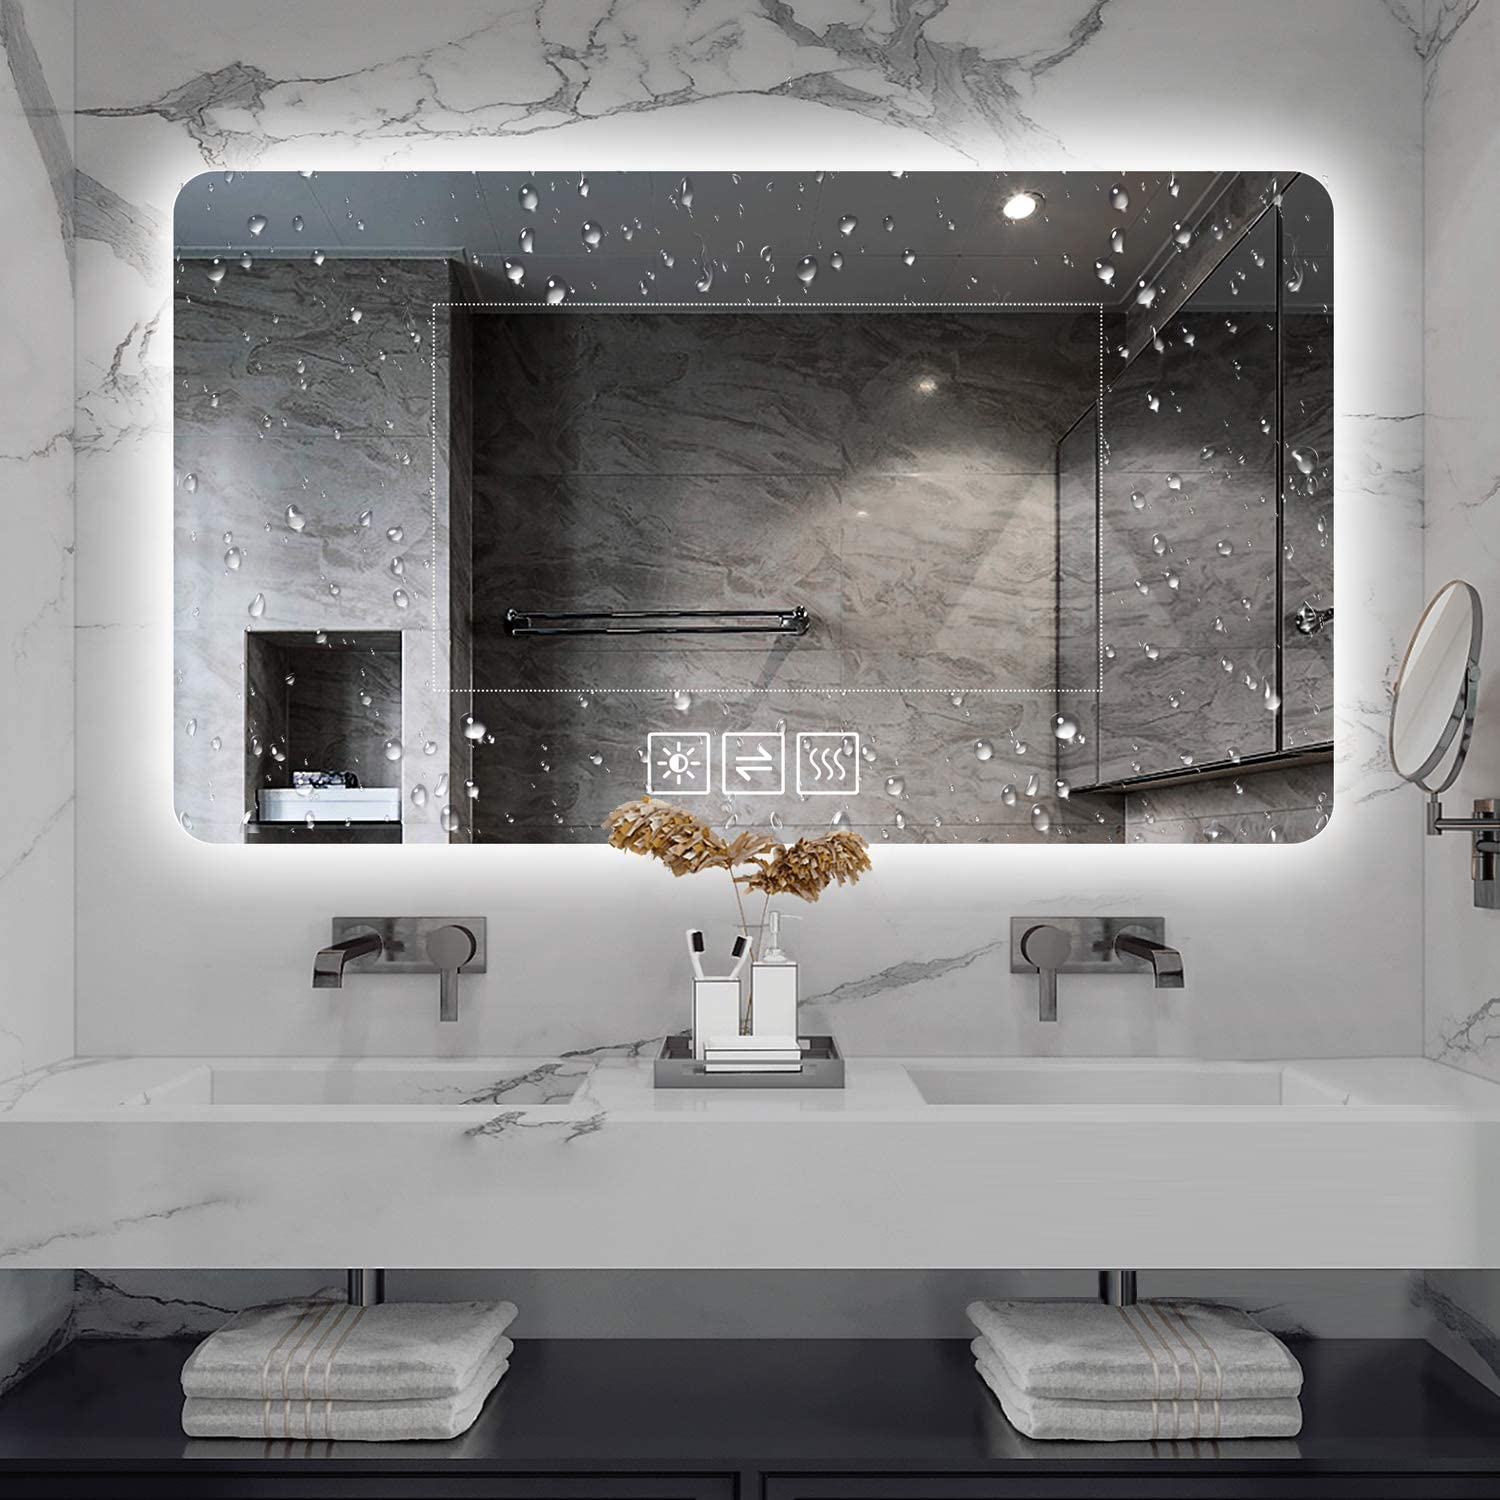 """LAIYA 36""""28"""" Bathroom Mirror Mirror with Light Wall-Mounted Led Mirrors Bathroom Bedroom Anti-Fog Waterproof for Home,Hotel and Office Use Brightness, Light Adjustment Intelligent Touch Button"""